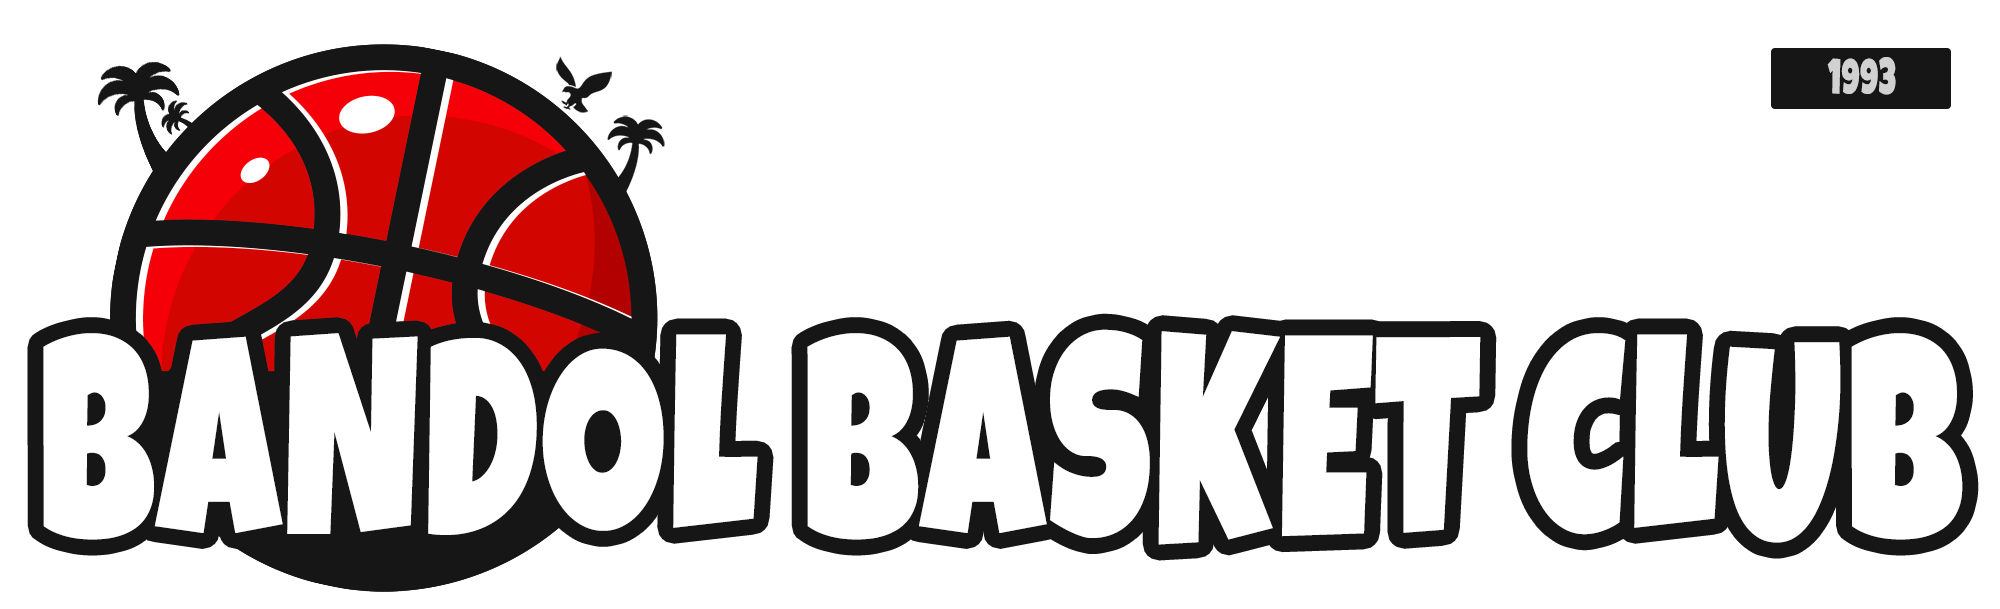 bandol basket club - logo